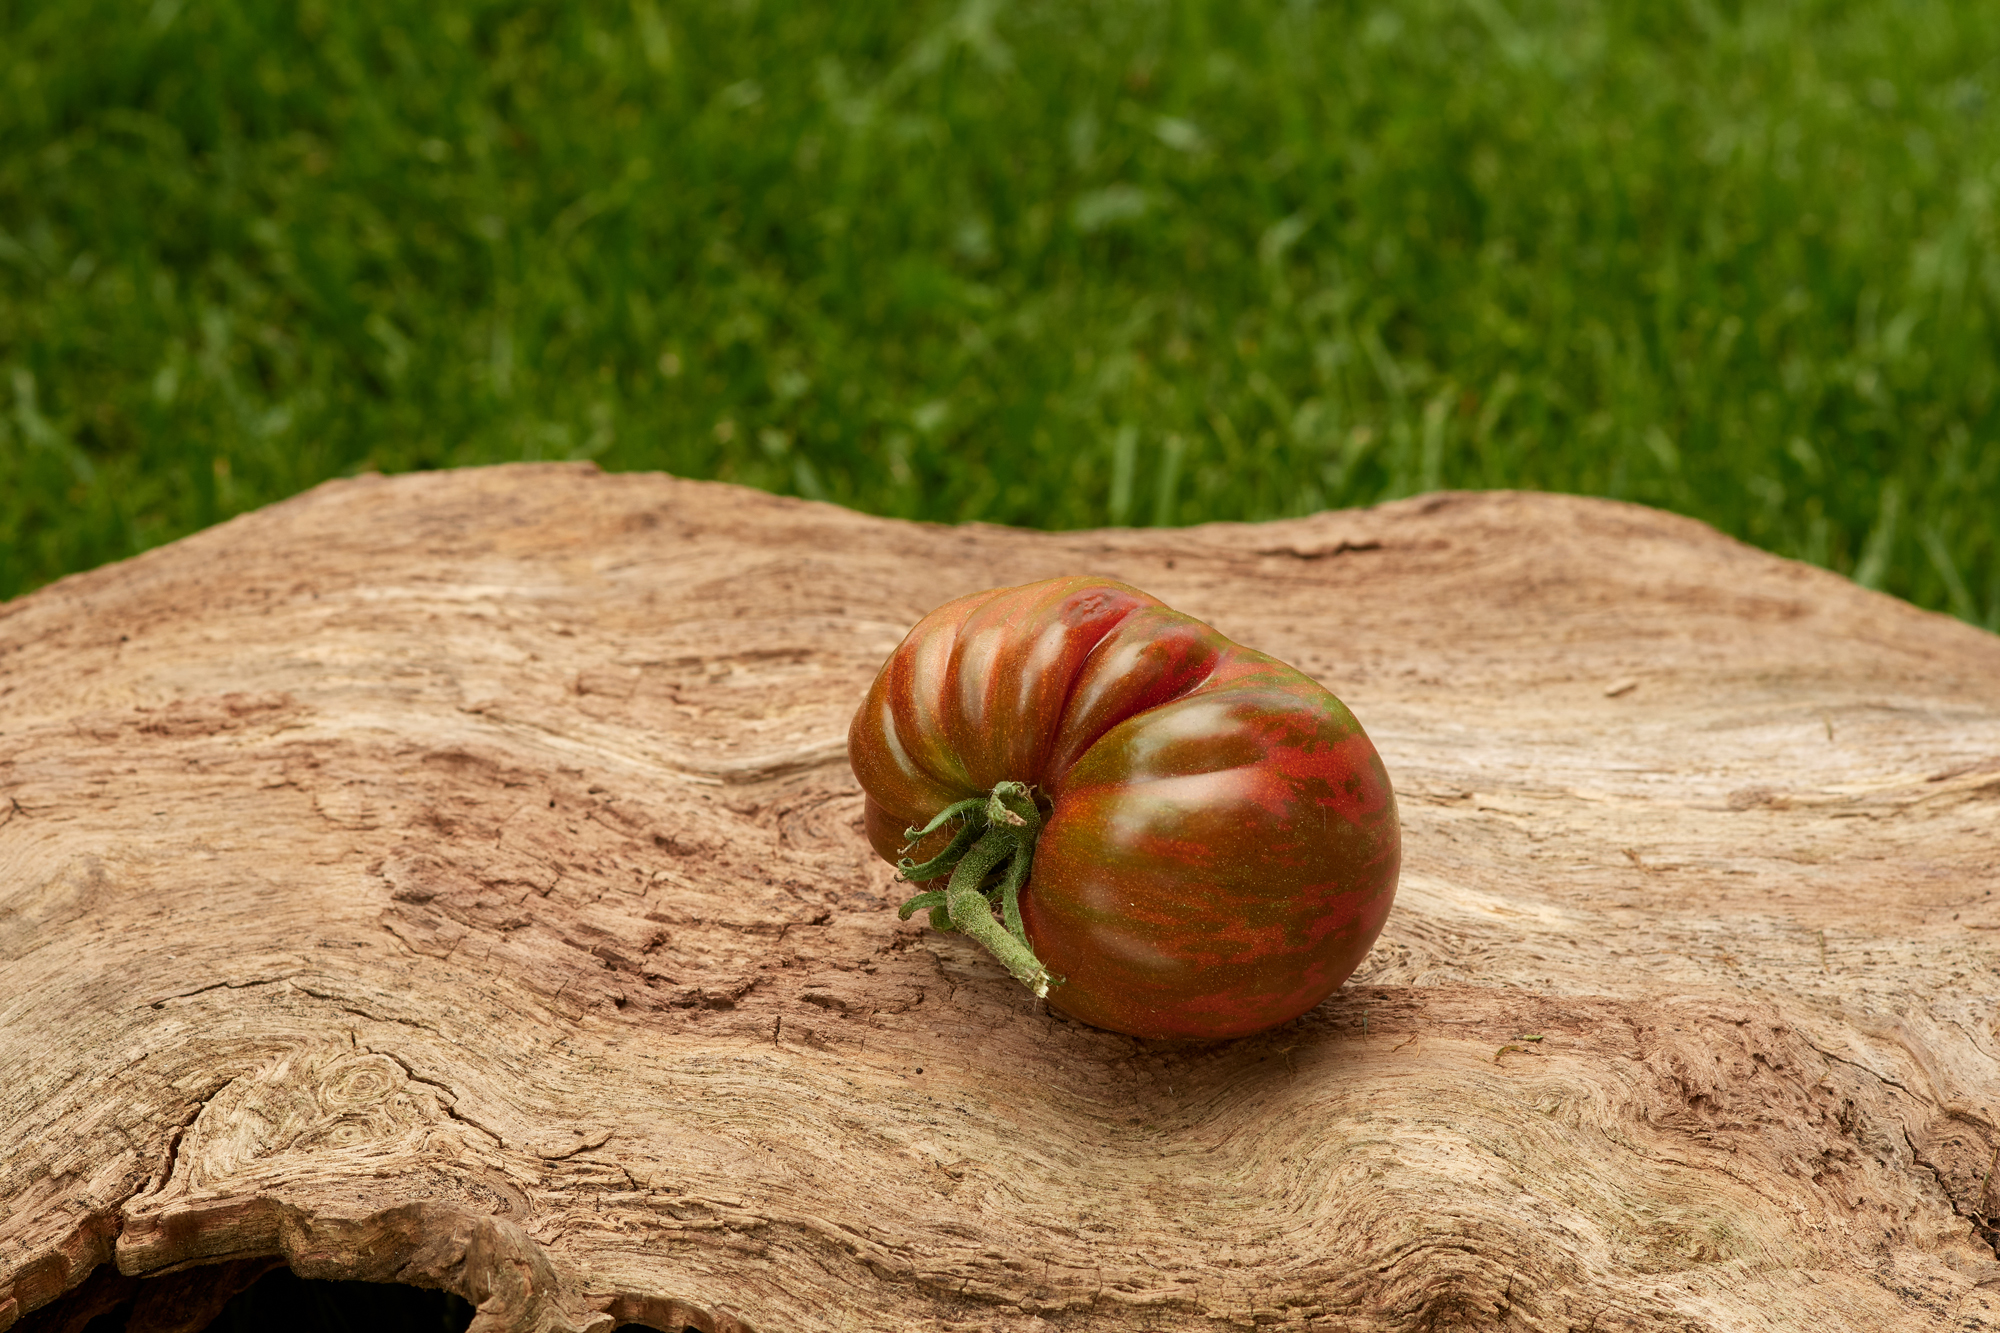 Tomate: Black and Red Boar